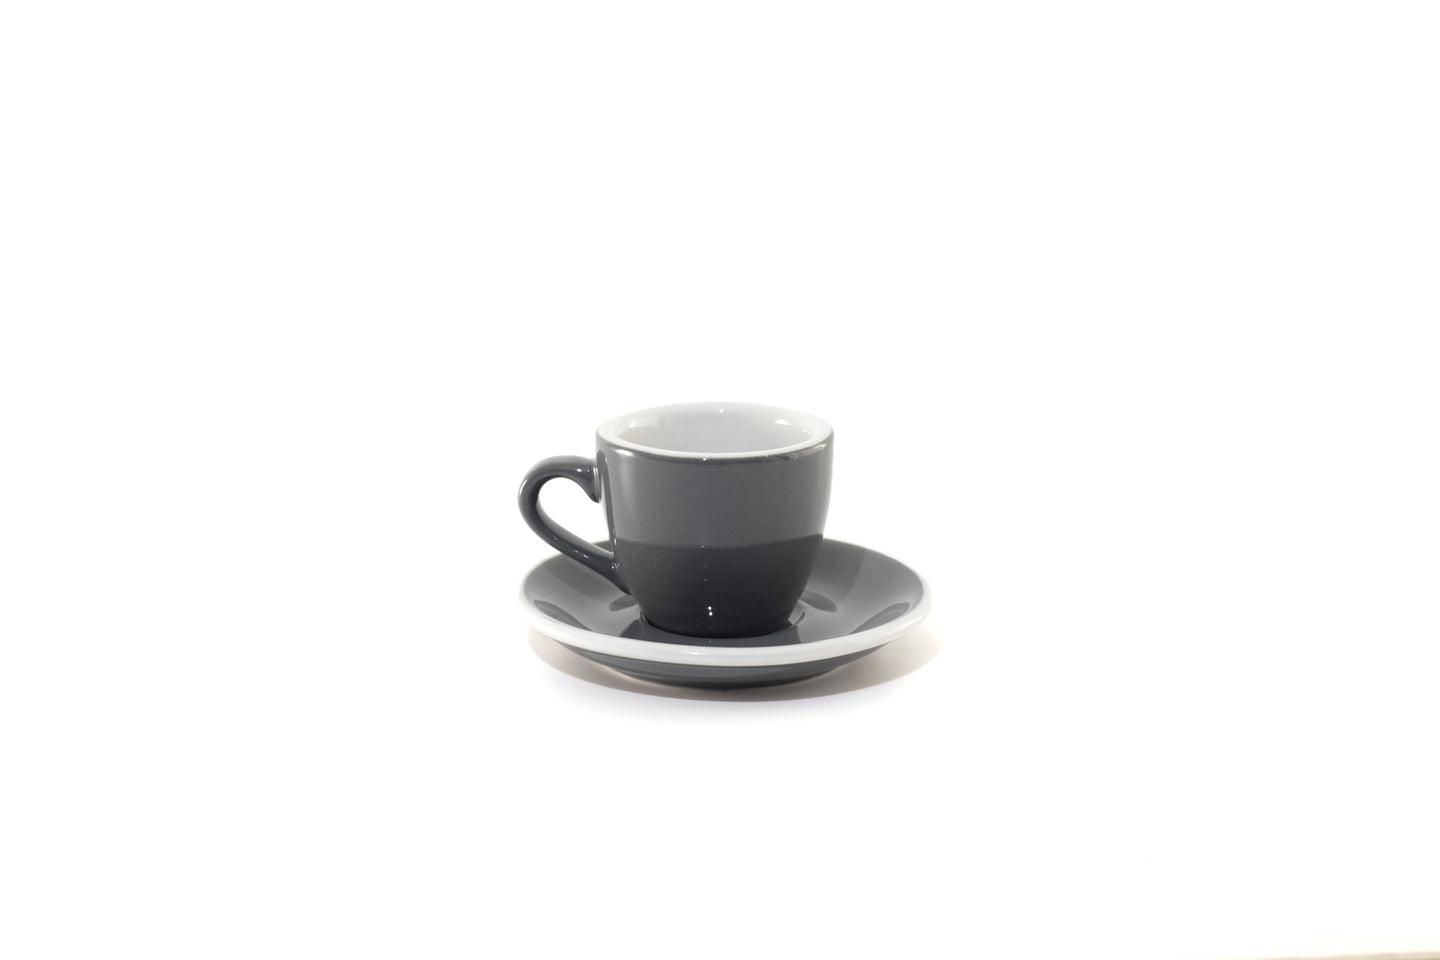 winner webshop stockholm specialty coffee specialty single saucers saucer origin new zealand nerd melbourne idea grey greasy spoon gift espresso enthusiast double espresso double dolphin designer cup coffee champion cafe buy online brunch barista acme & co